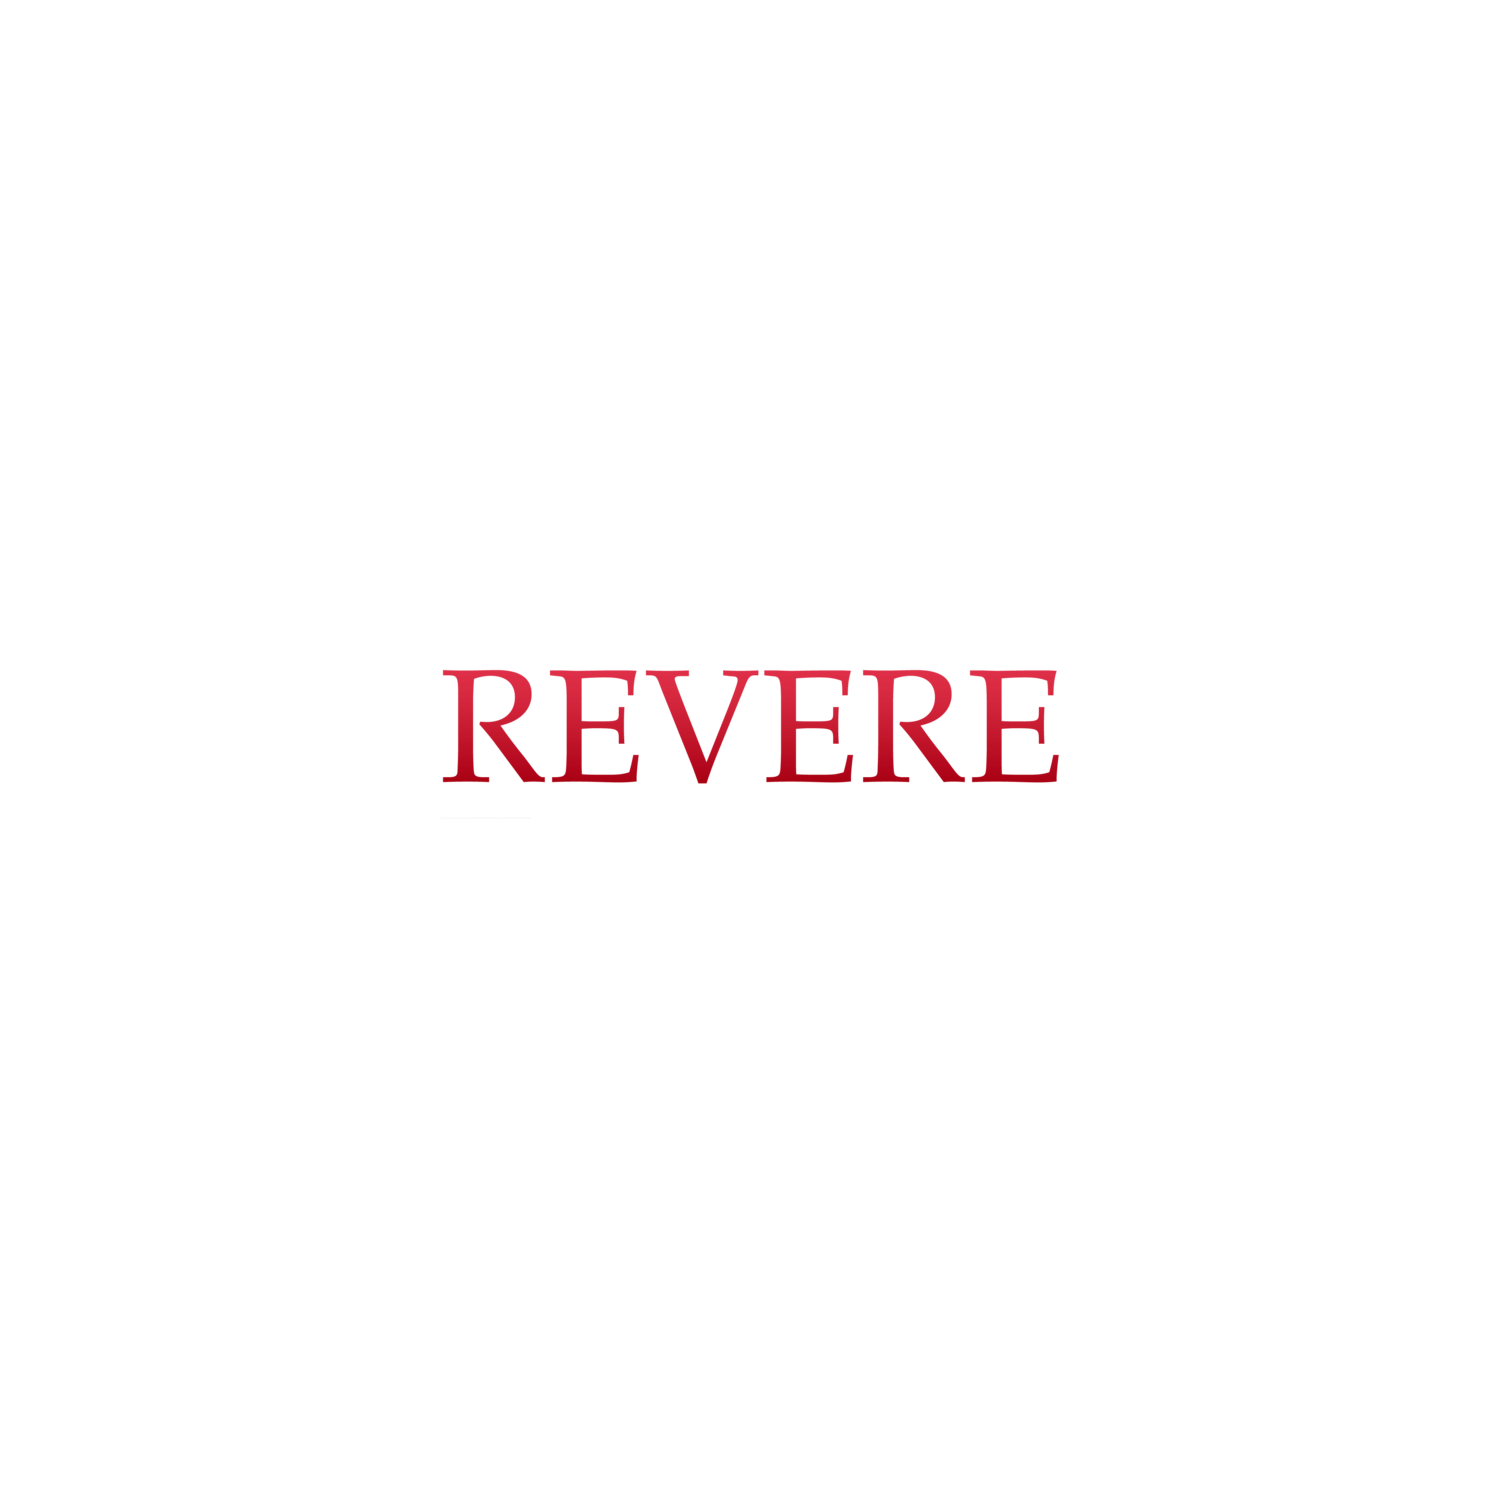 Revere Capital Group